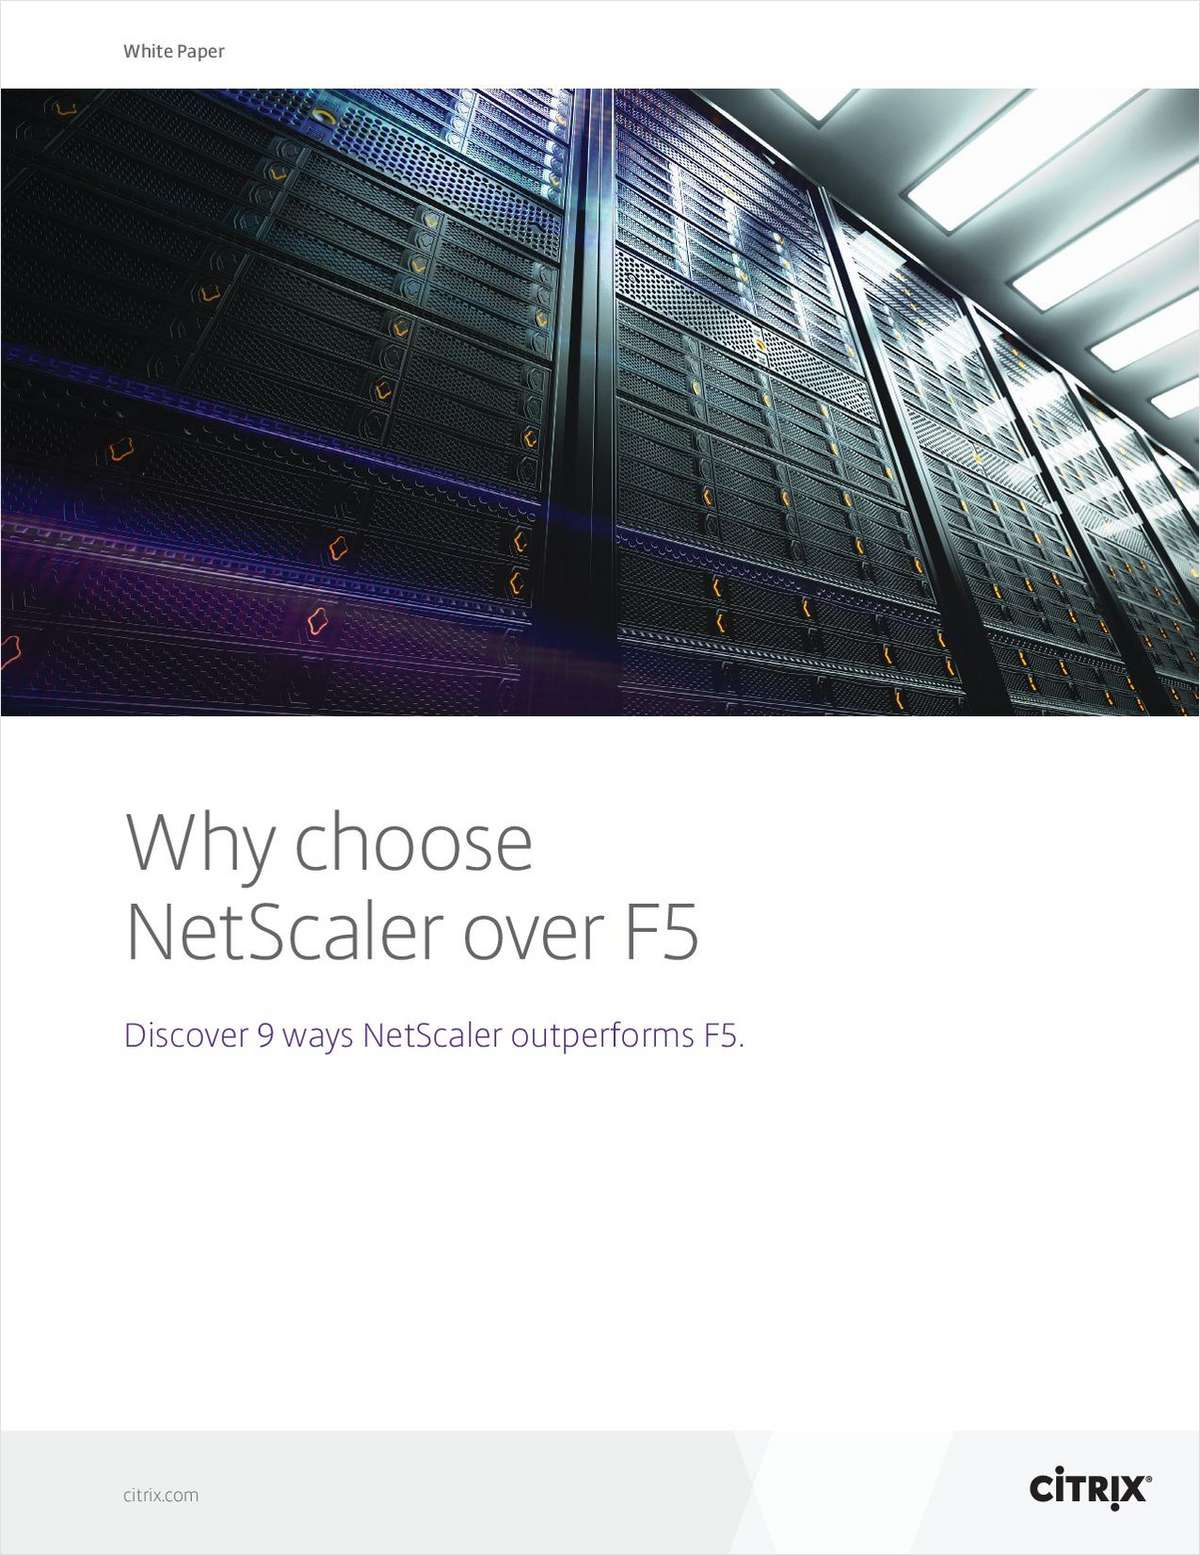 Why Choose NetScaler Over F5